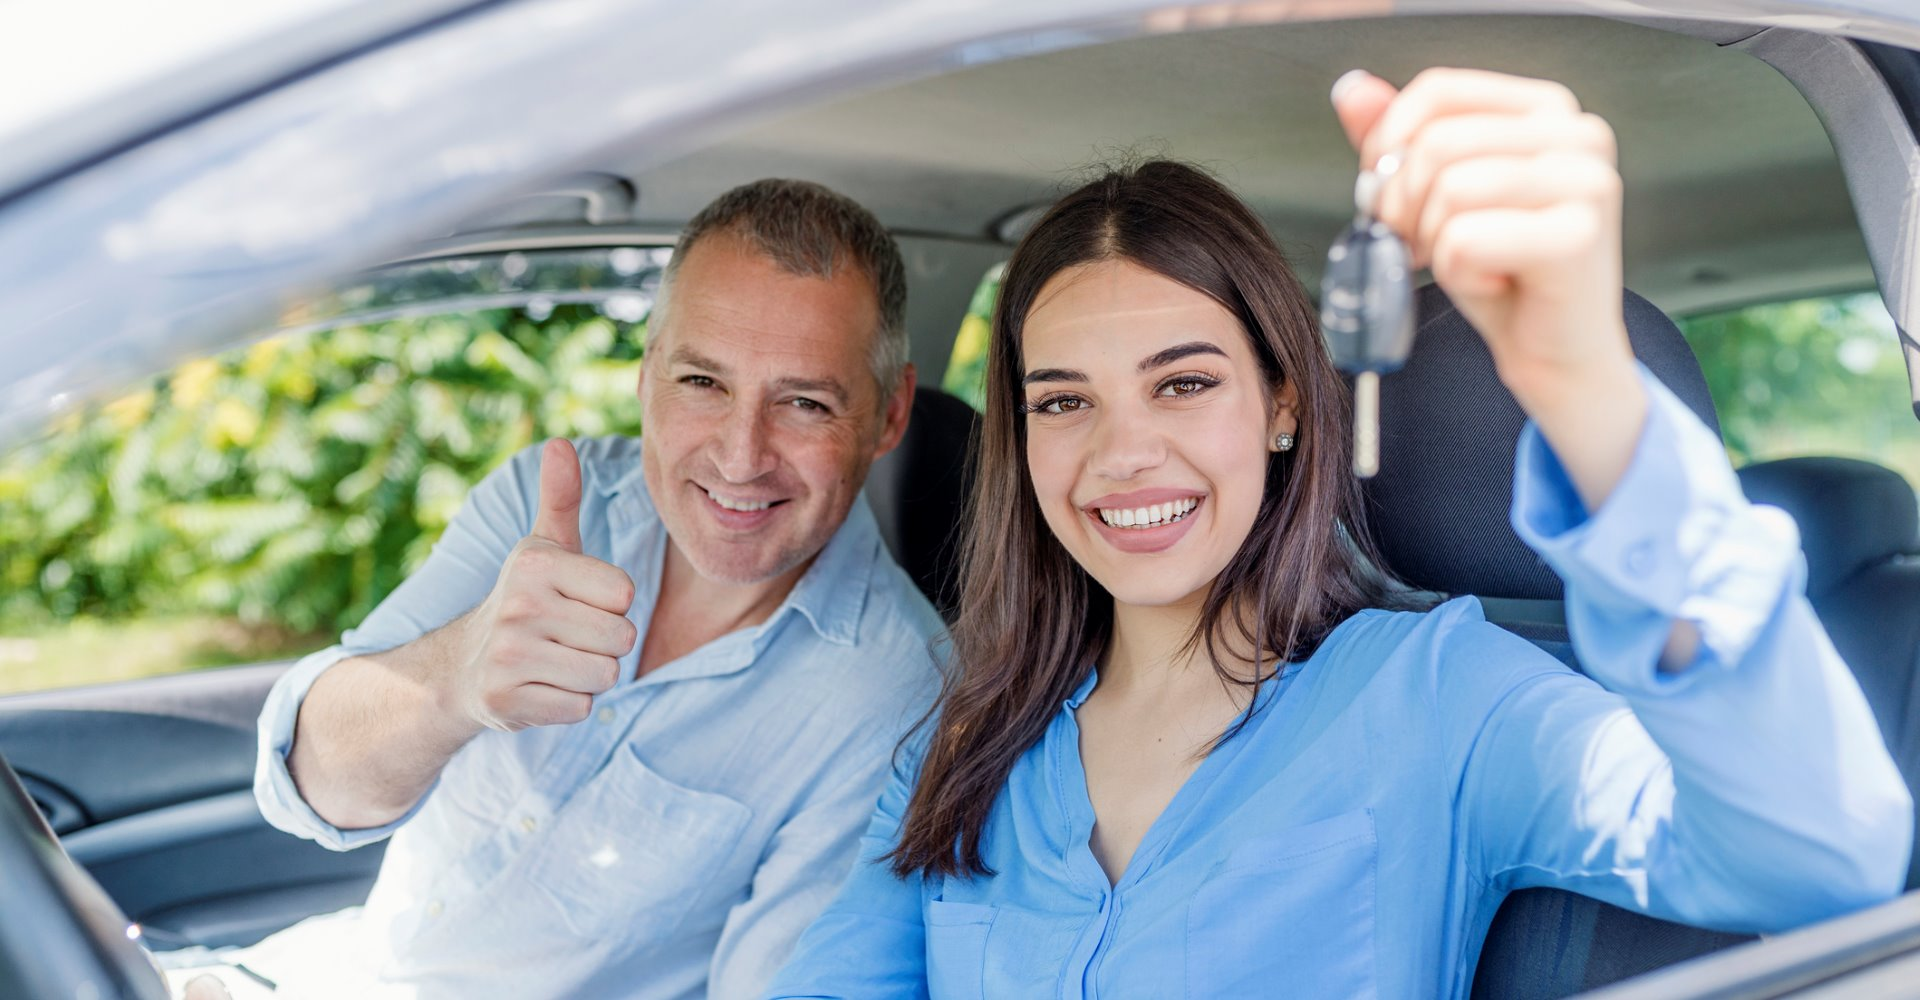 Essential Tips to Follow While Choosing a Driving School